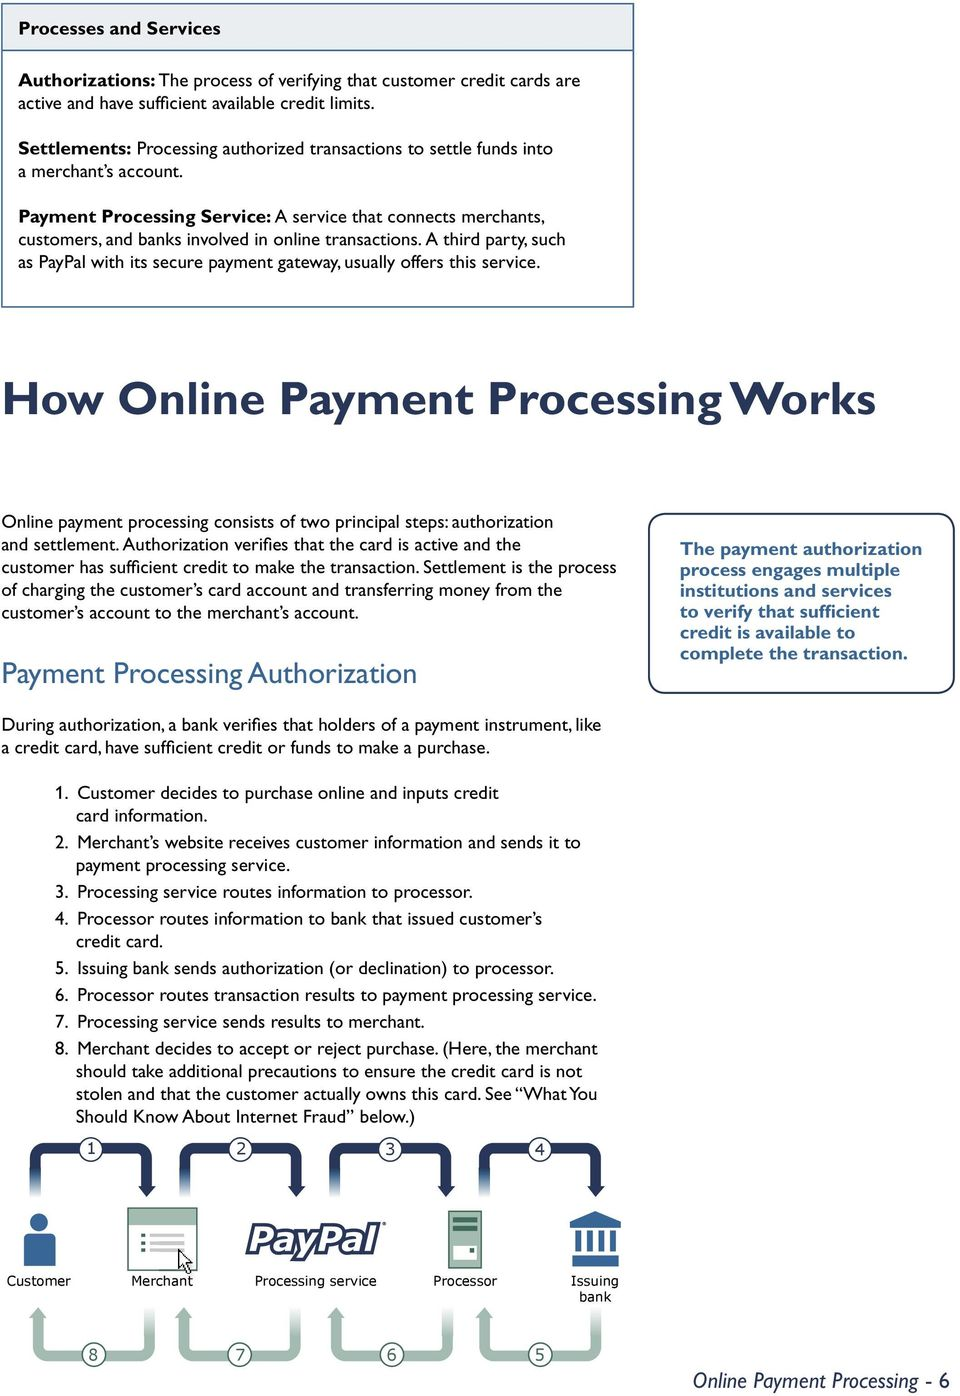 Payment Processing Service: A service that connects merchants, customers, and banks involved in online transactions.